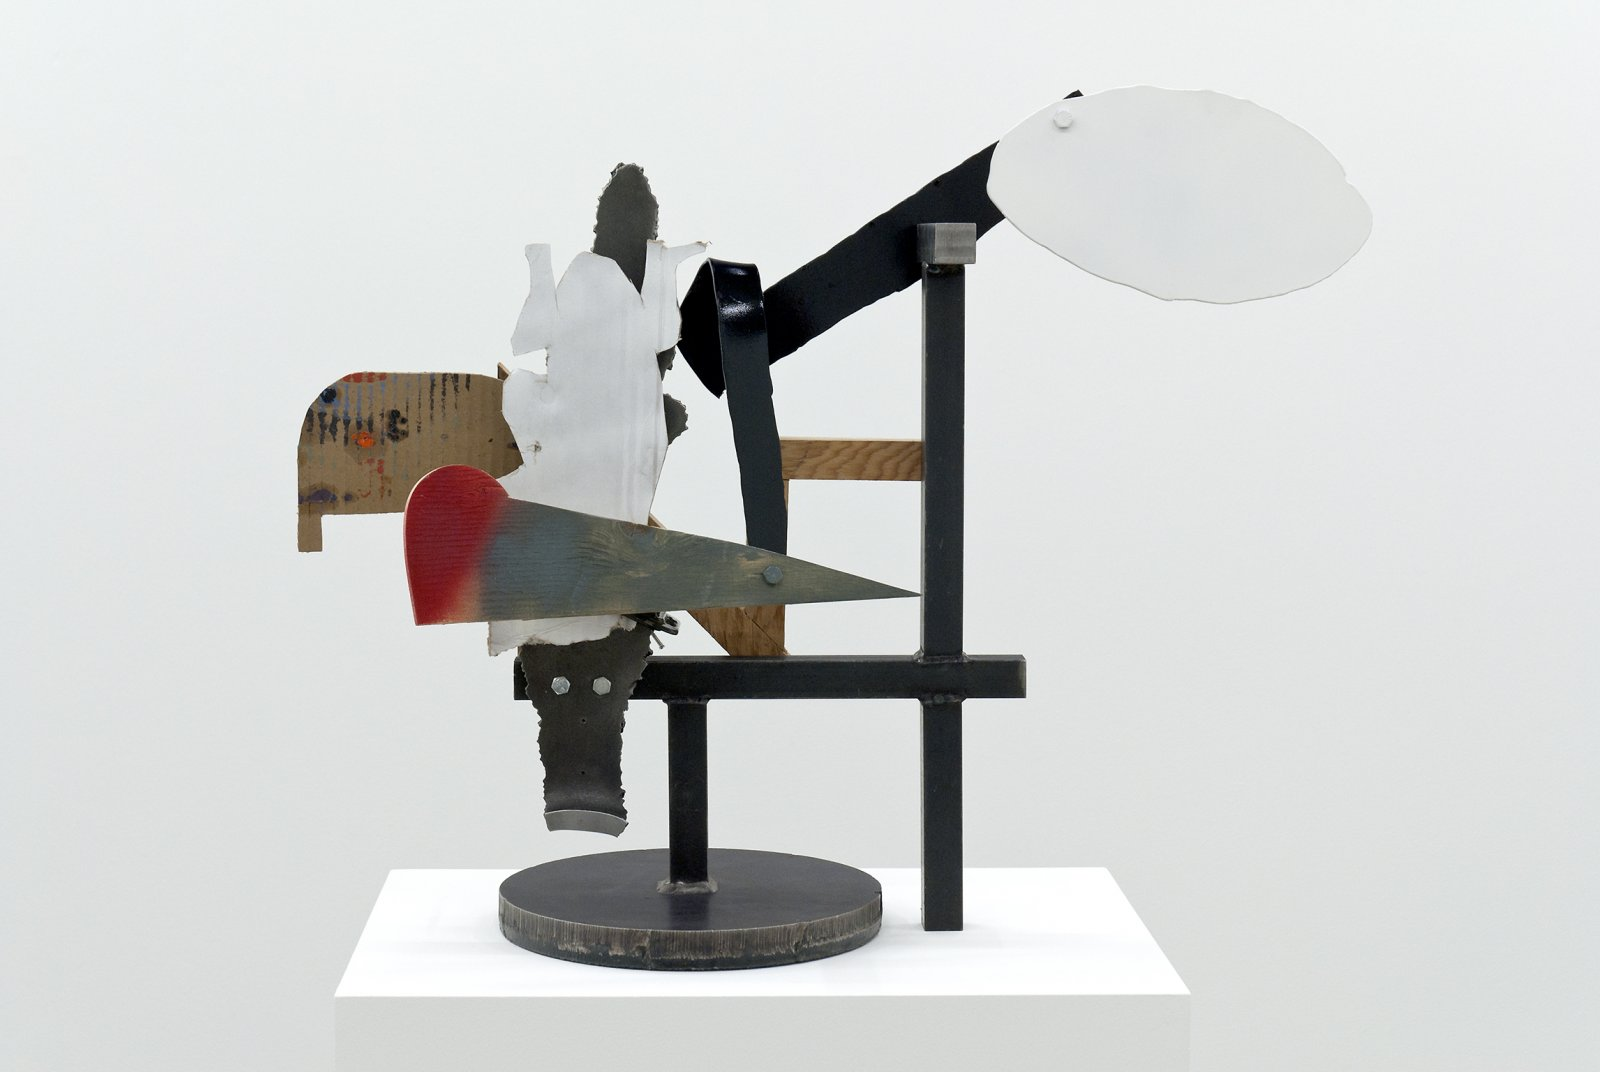 Damian Moppett, Untitled, 2010, steel, wood, cardboard, clamps, 22 x 29 x 8 in. (55 x 72 x 20 cm) by Damian Moppett